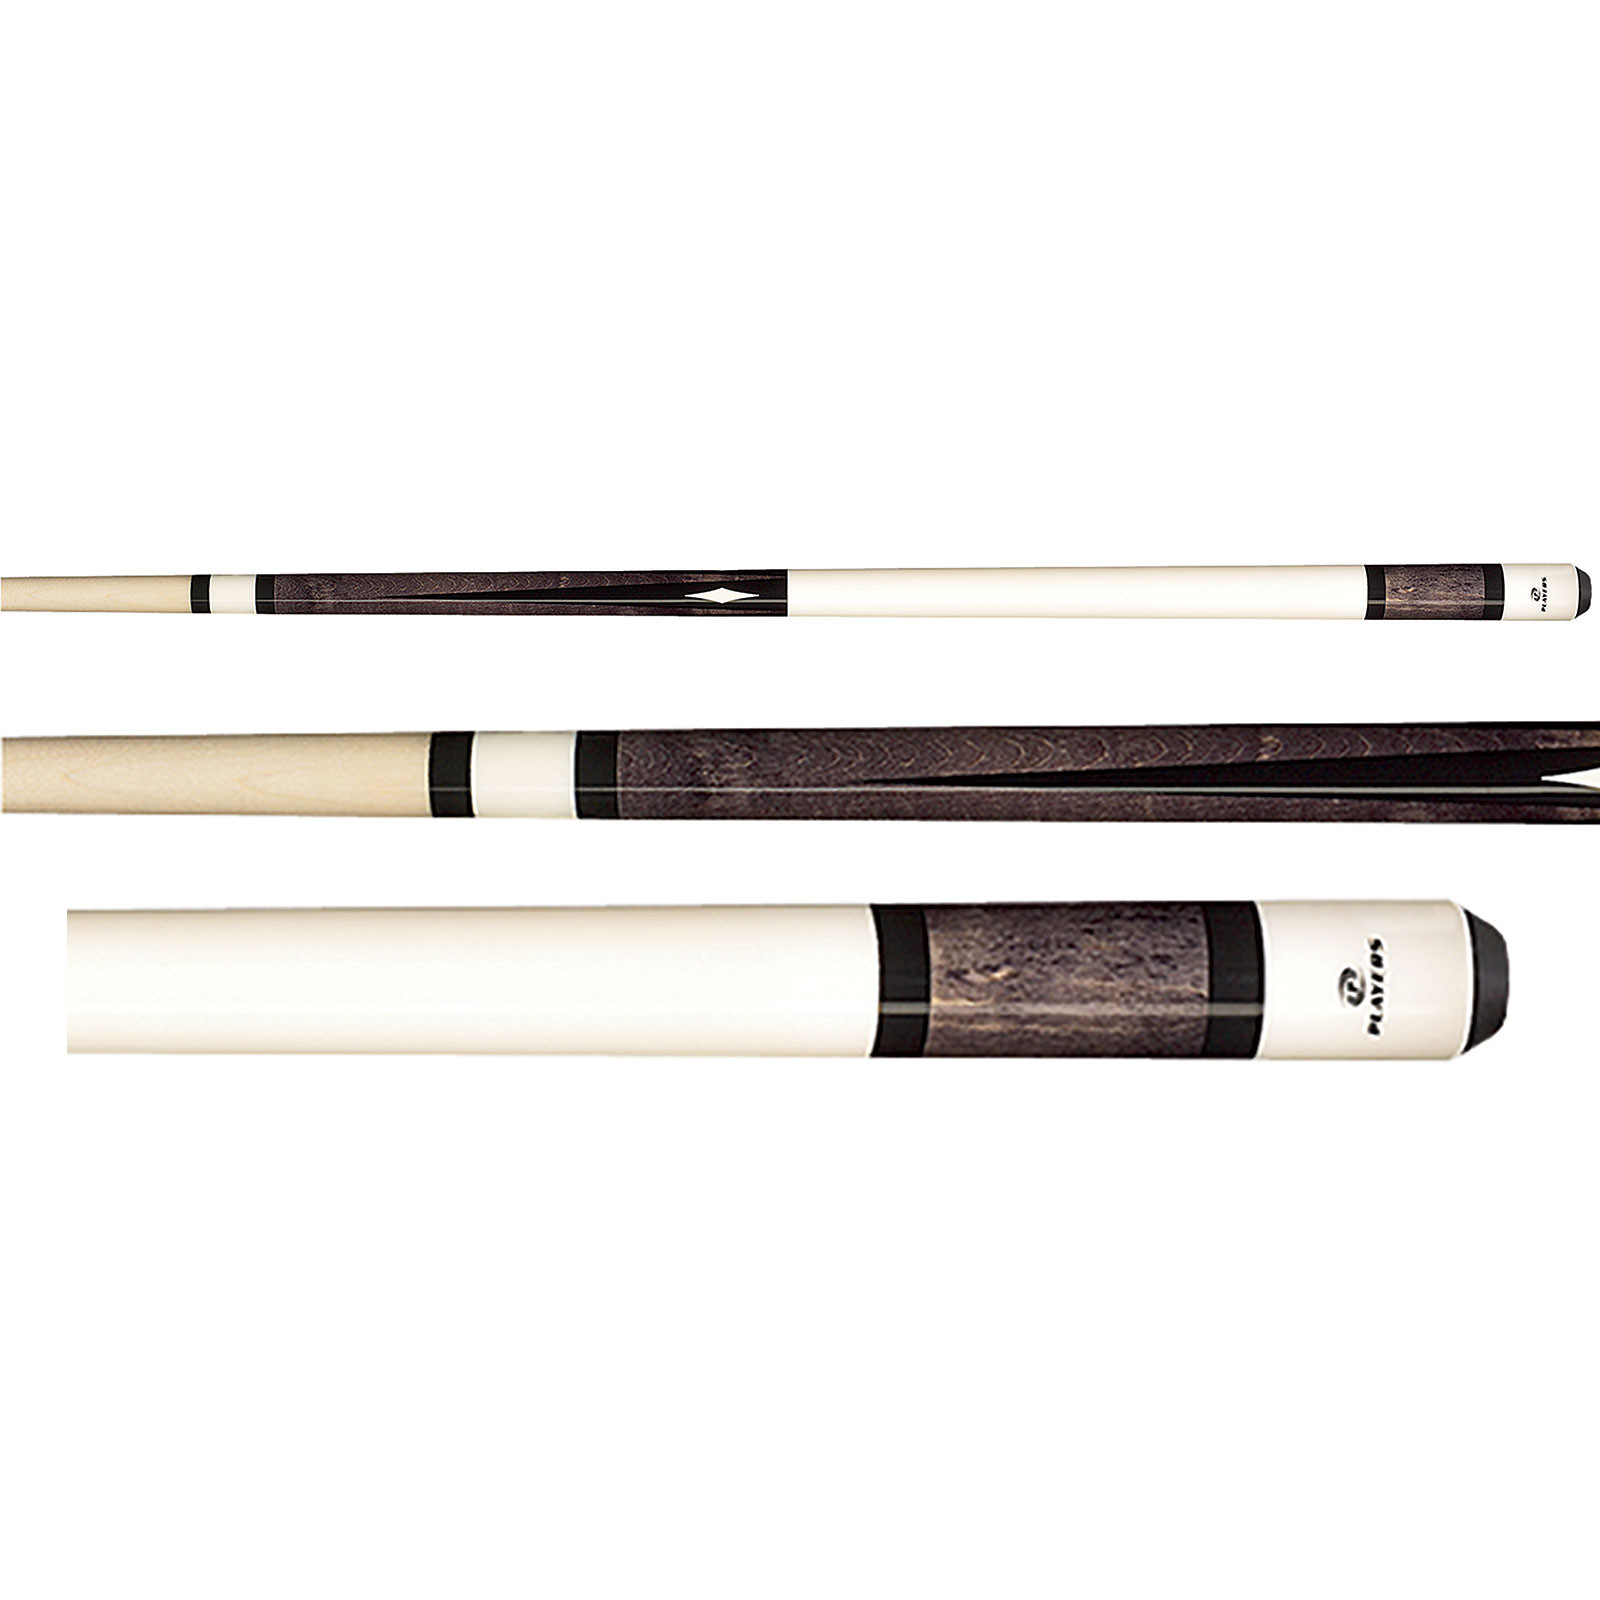 Players C-945 White Grey Pool Cue